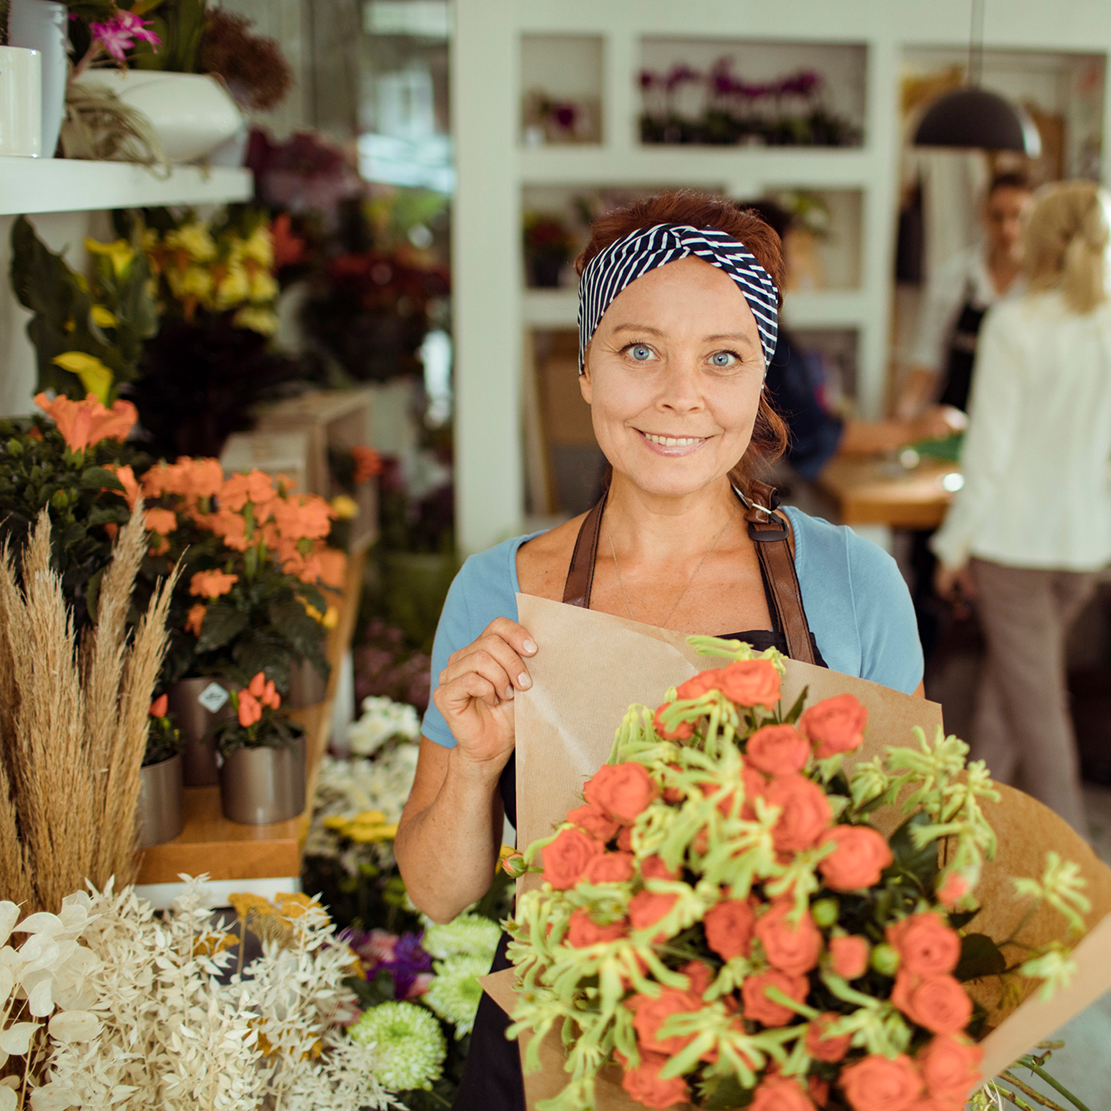 How to Pick the Best Small Business Credit Card